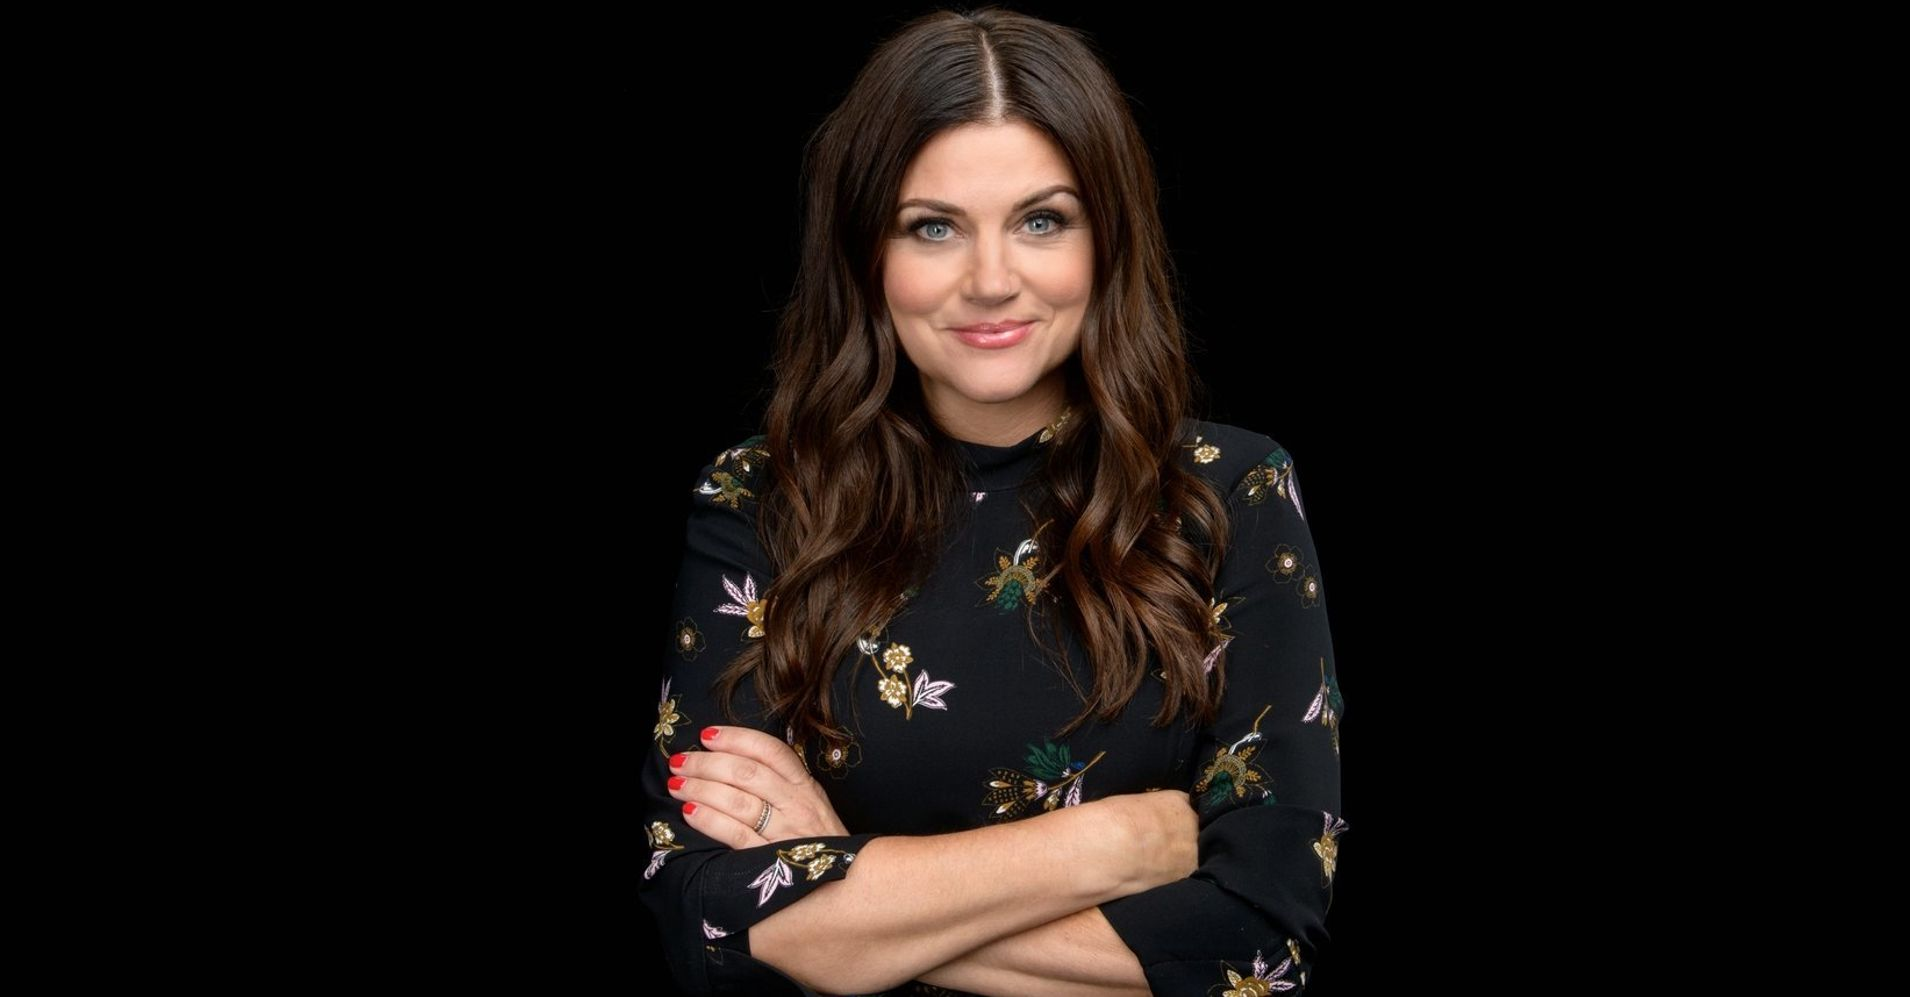 Tiffani Thiessen On The Likelihood Of A \'Saved By The Bell\' Revival ...